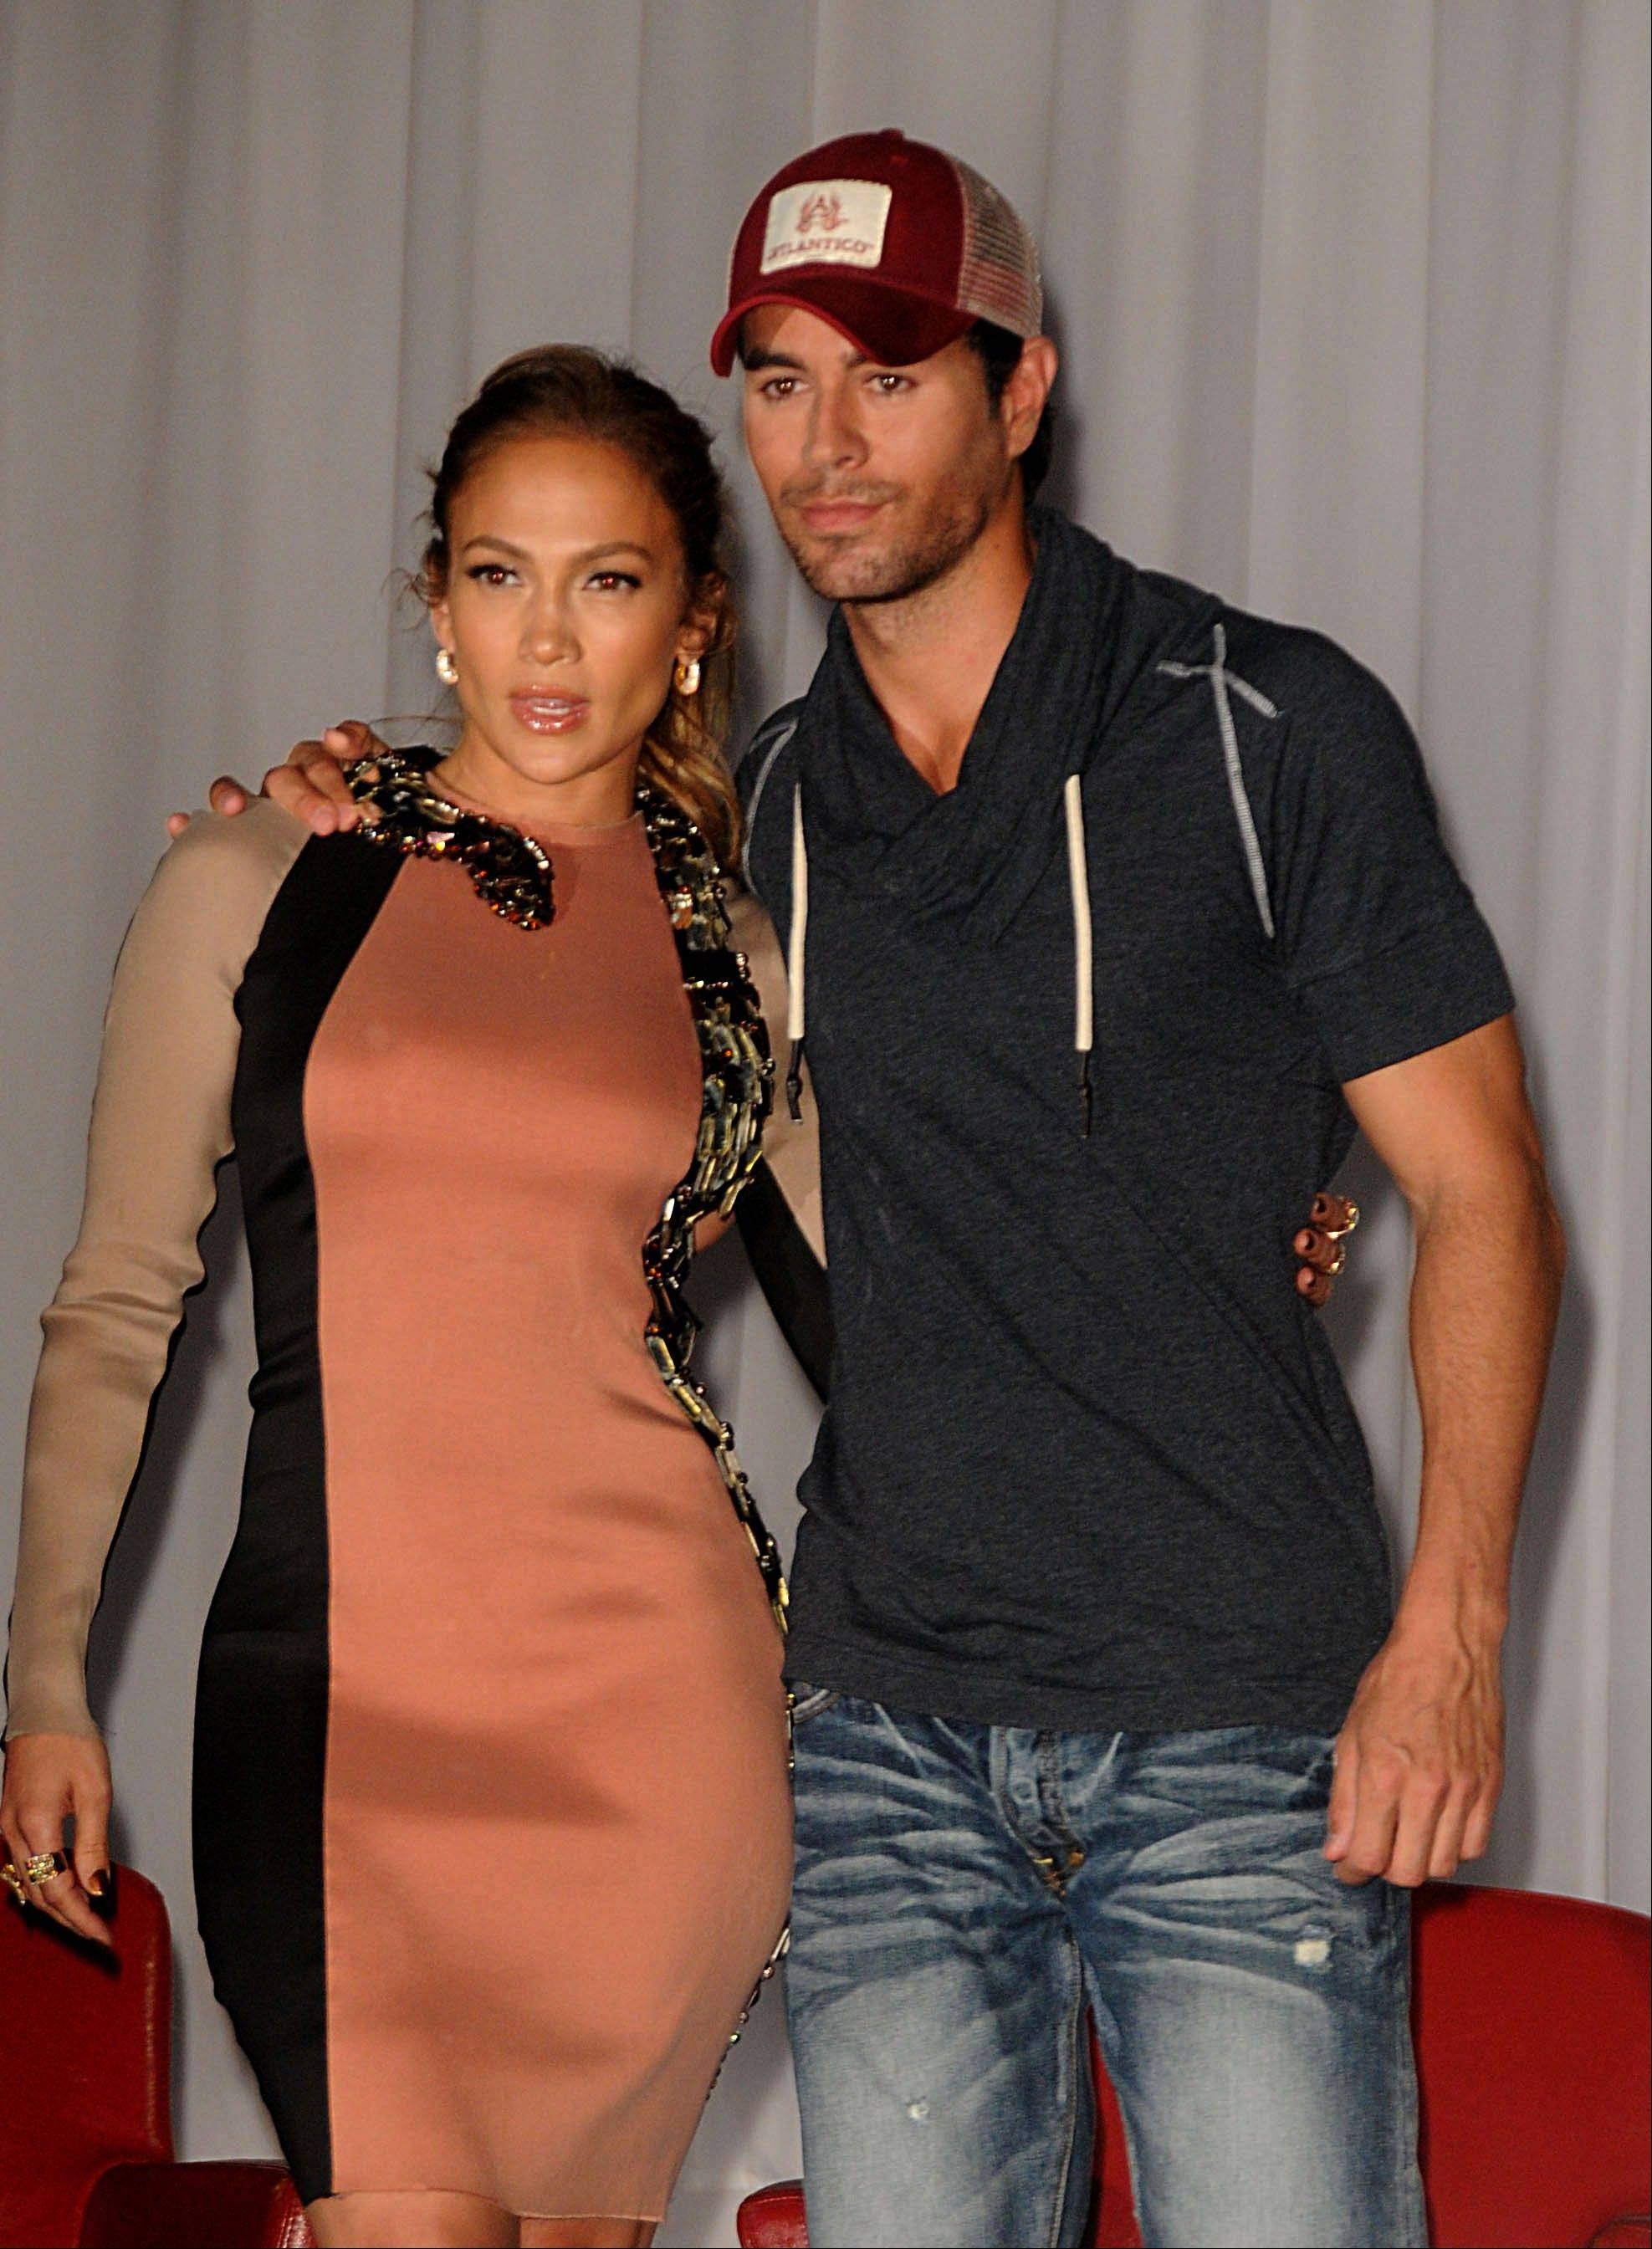 Jennifer Lopez and Enrique Iglesias appear in concert together at the United Center in Chicago on Friday, Aug. 3.